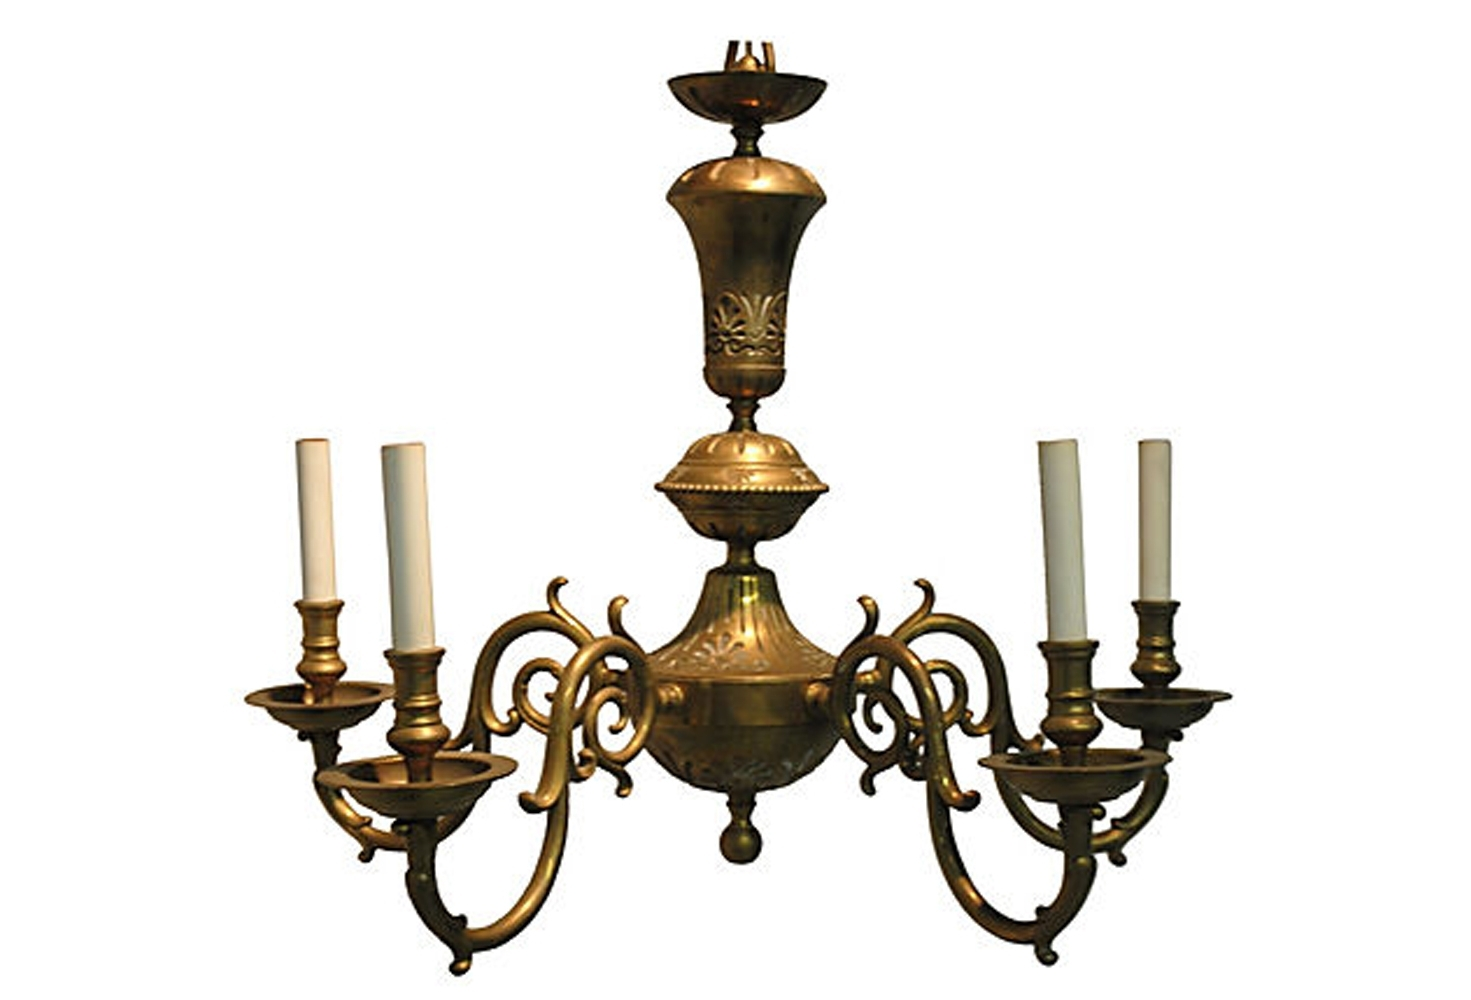 Home Design : Extraordinary Antique Brass Chandeliers Chandelier With Preferred Old Brass Chandeliers (View 4 of 15)